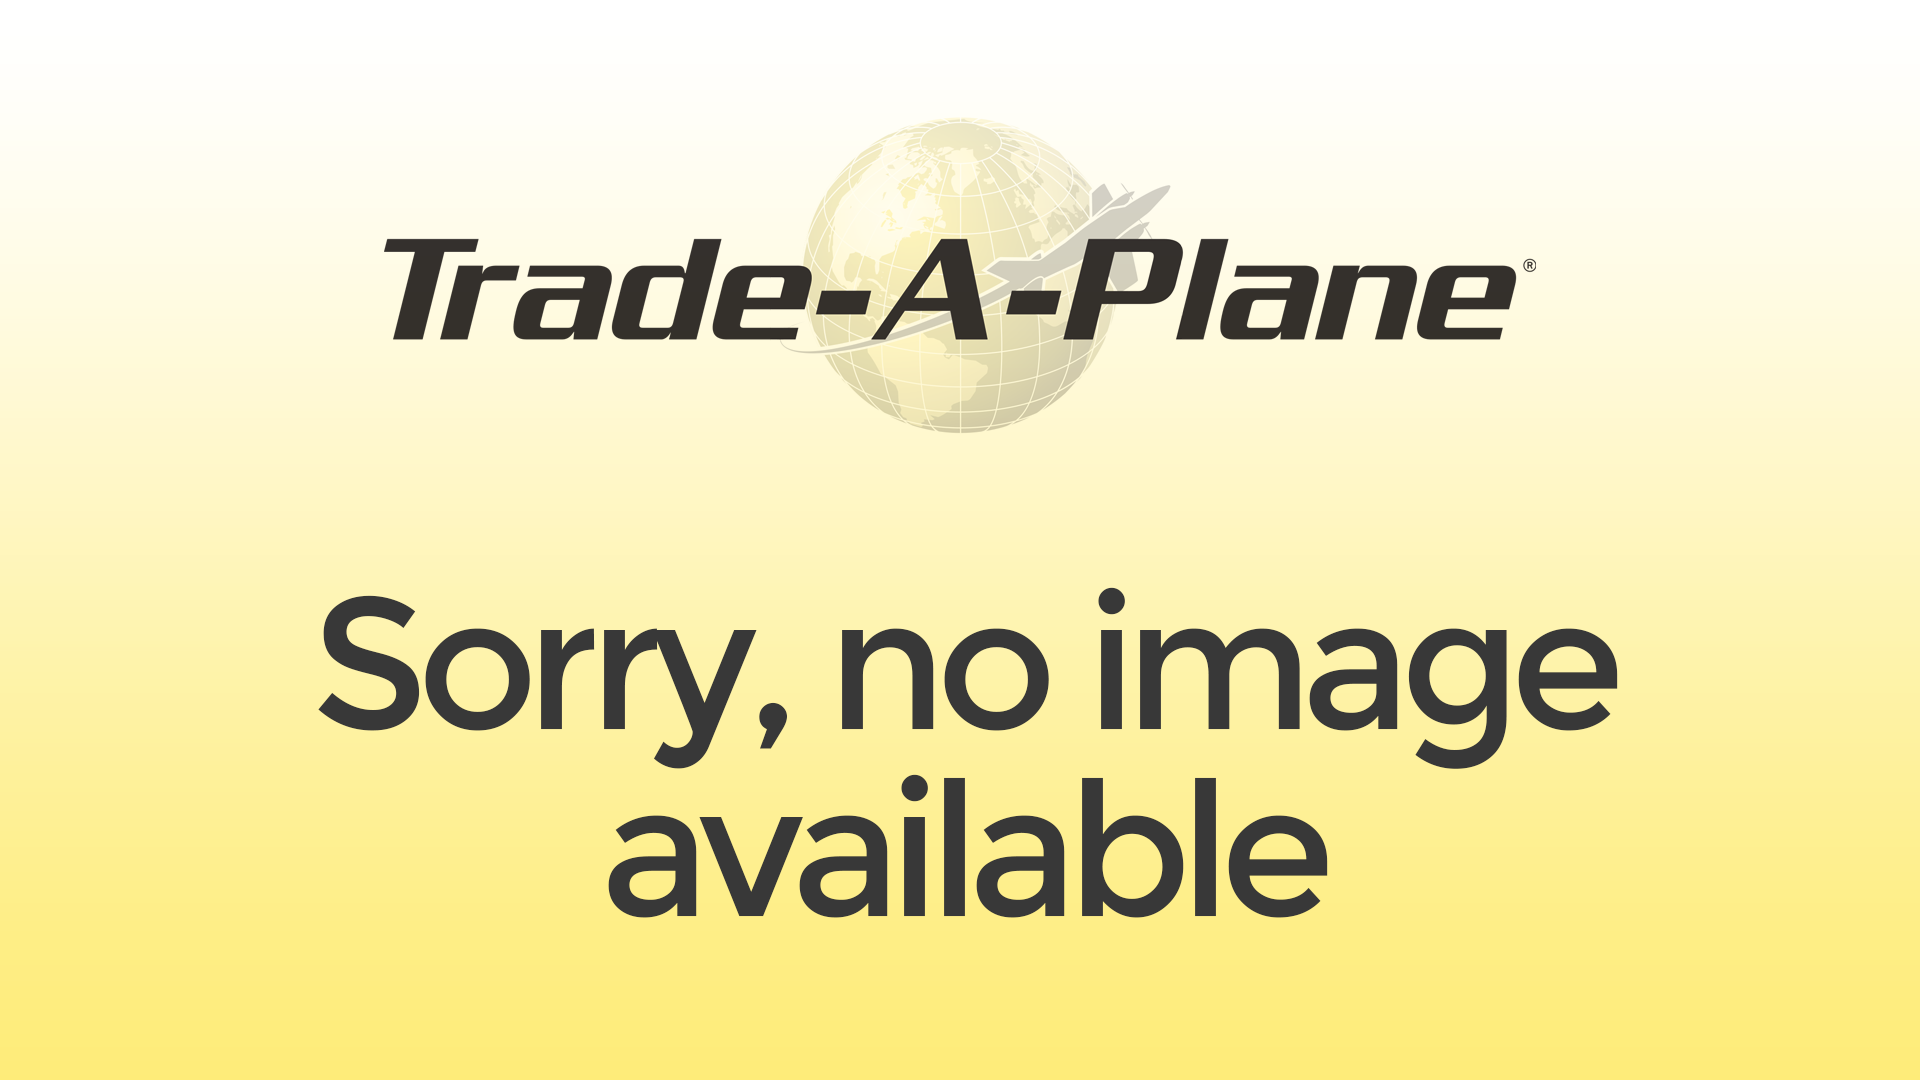 http://www.trade-a-plane.com/display-asset?id=99489